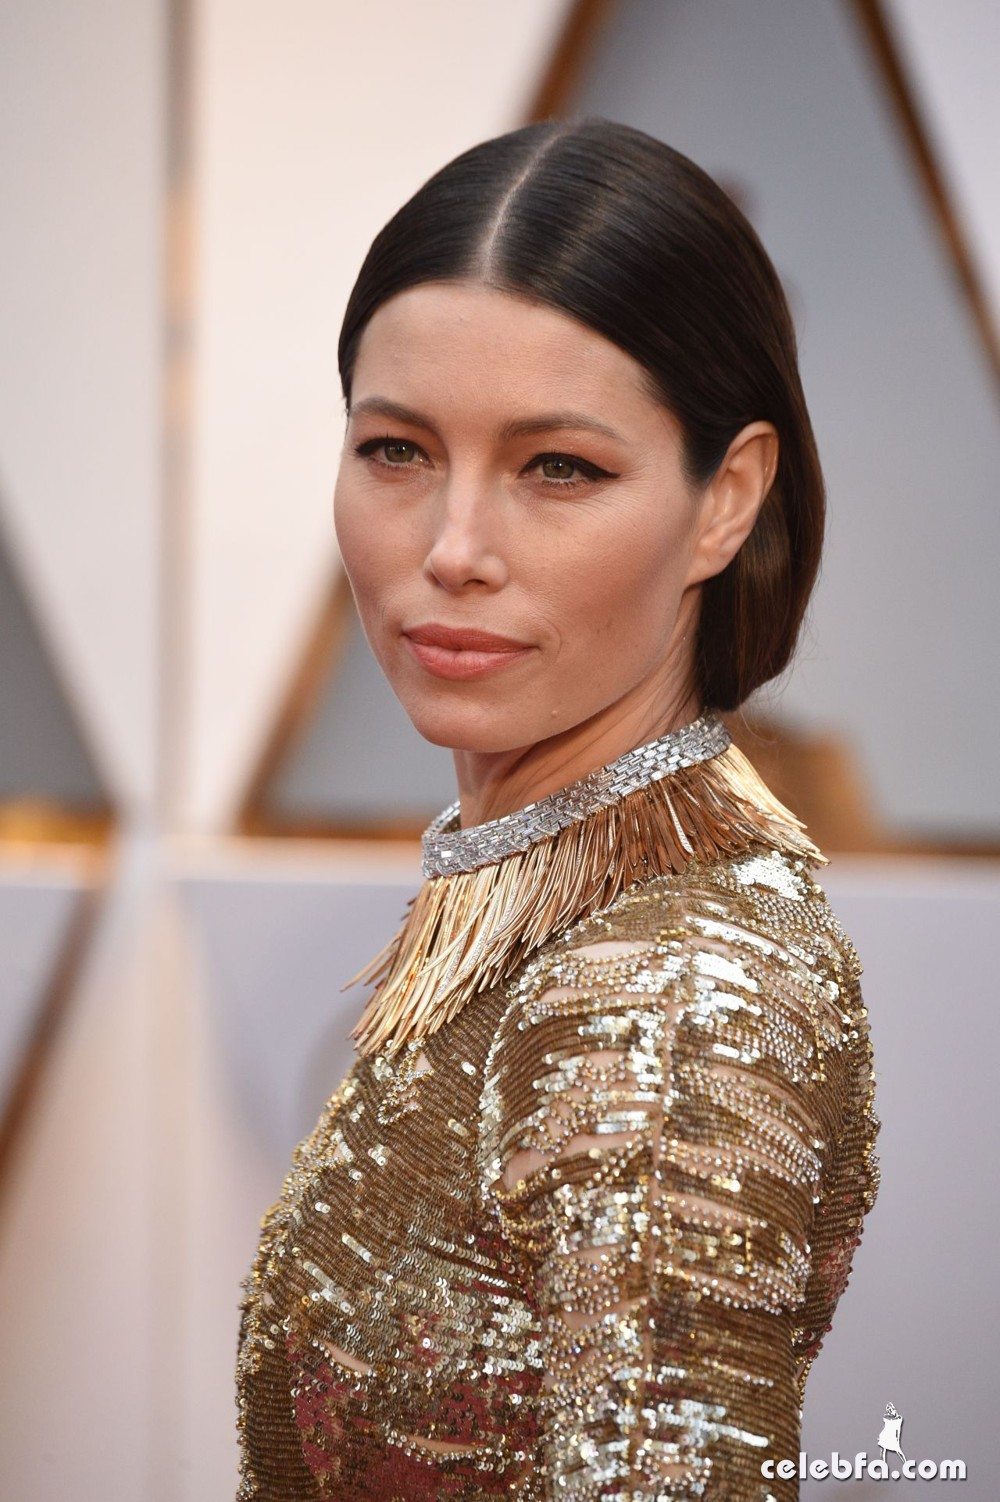 jessica-biel-oscars-2017-red-carpet-5